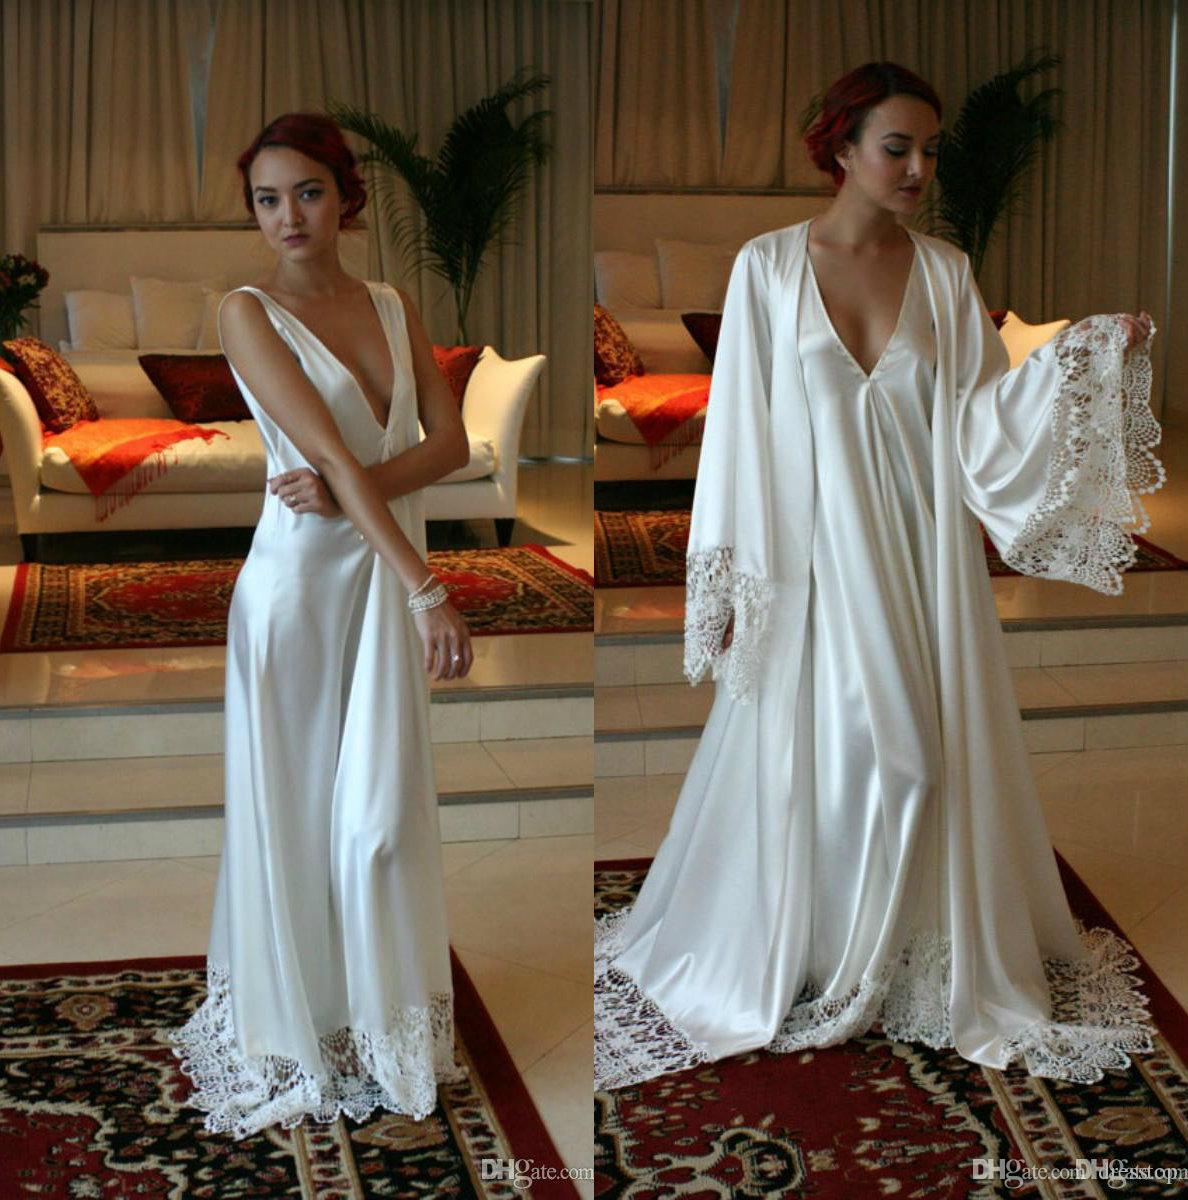 808a3e14ab 2019 Chic Long Sleeves Cheap Bridesmaid And Bride Robes Custom Made Silk  Satin Bathrobe Wedding Party Robe For Women Floor Length Lace Sleepwear  From ...